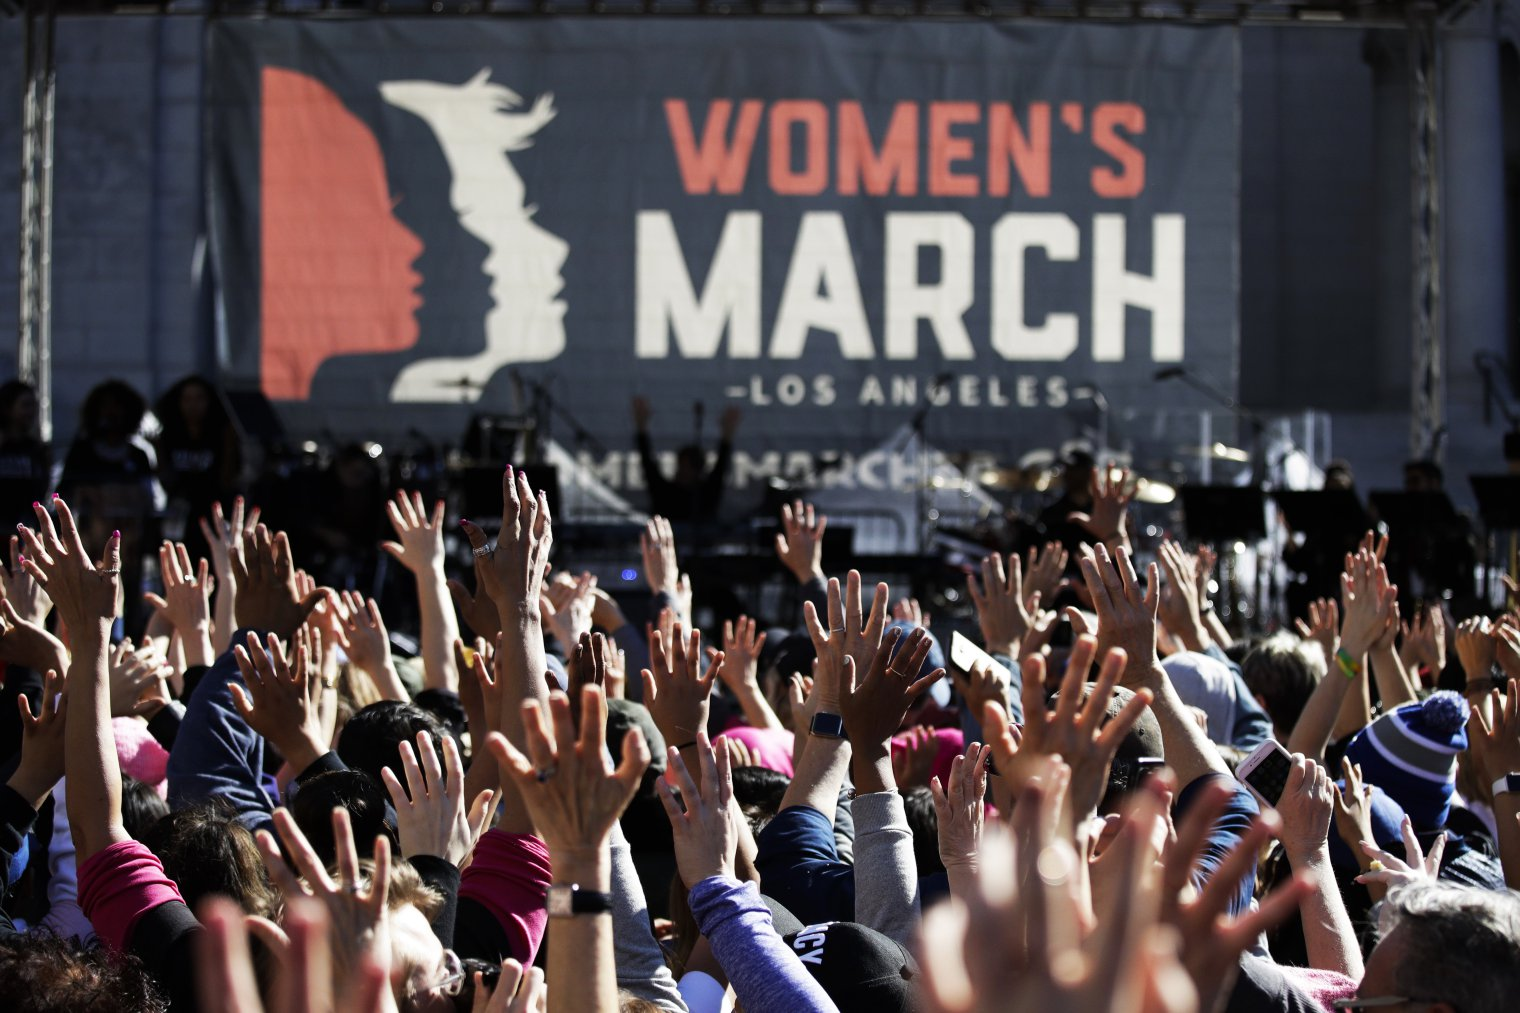 Mandatory Credit: Photo by Jae C. Hong/AP/Shutterstock (9327544a) People hold their hands up at a Women's March against sexual violence and the policies of the Trump administration, in Los Angeles Womens March , Los Angeles, USA - 20 Jan 2018